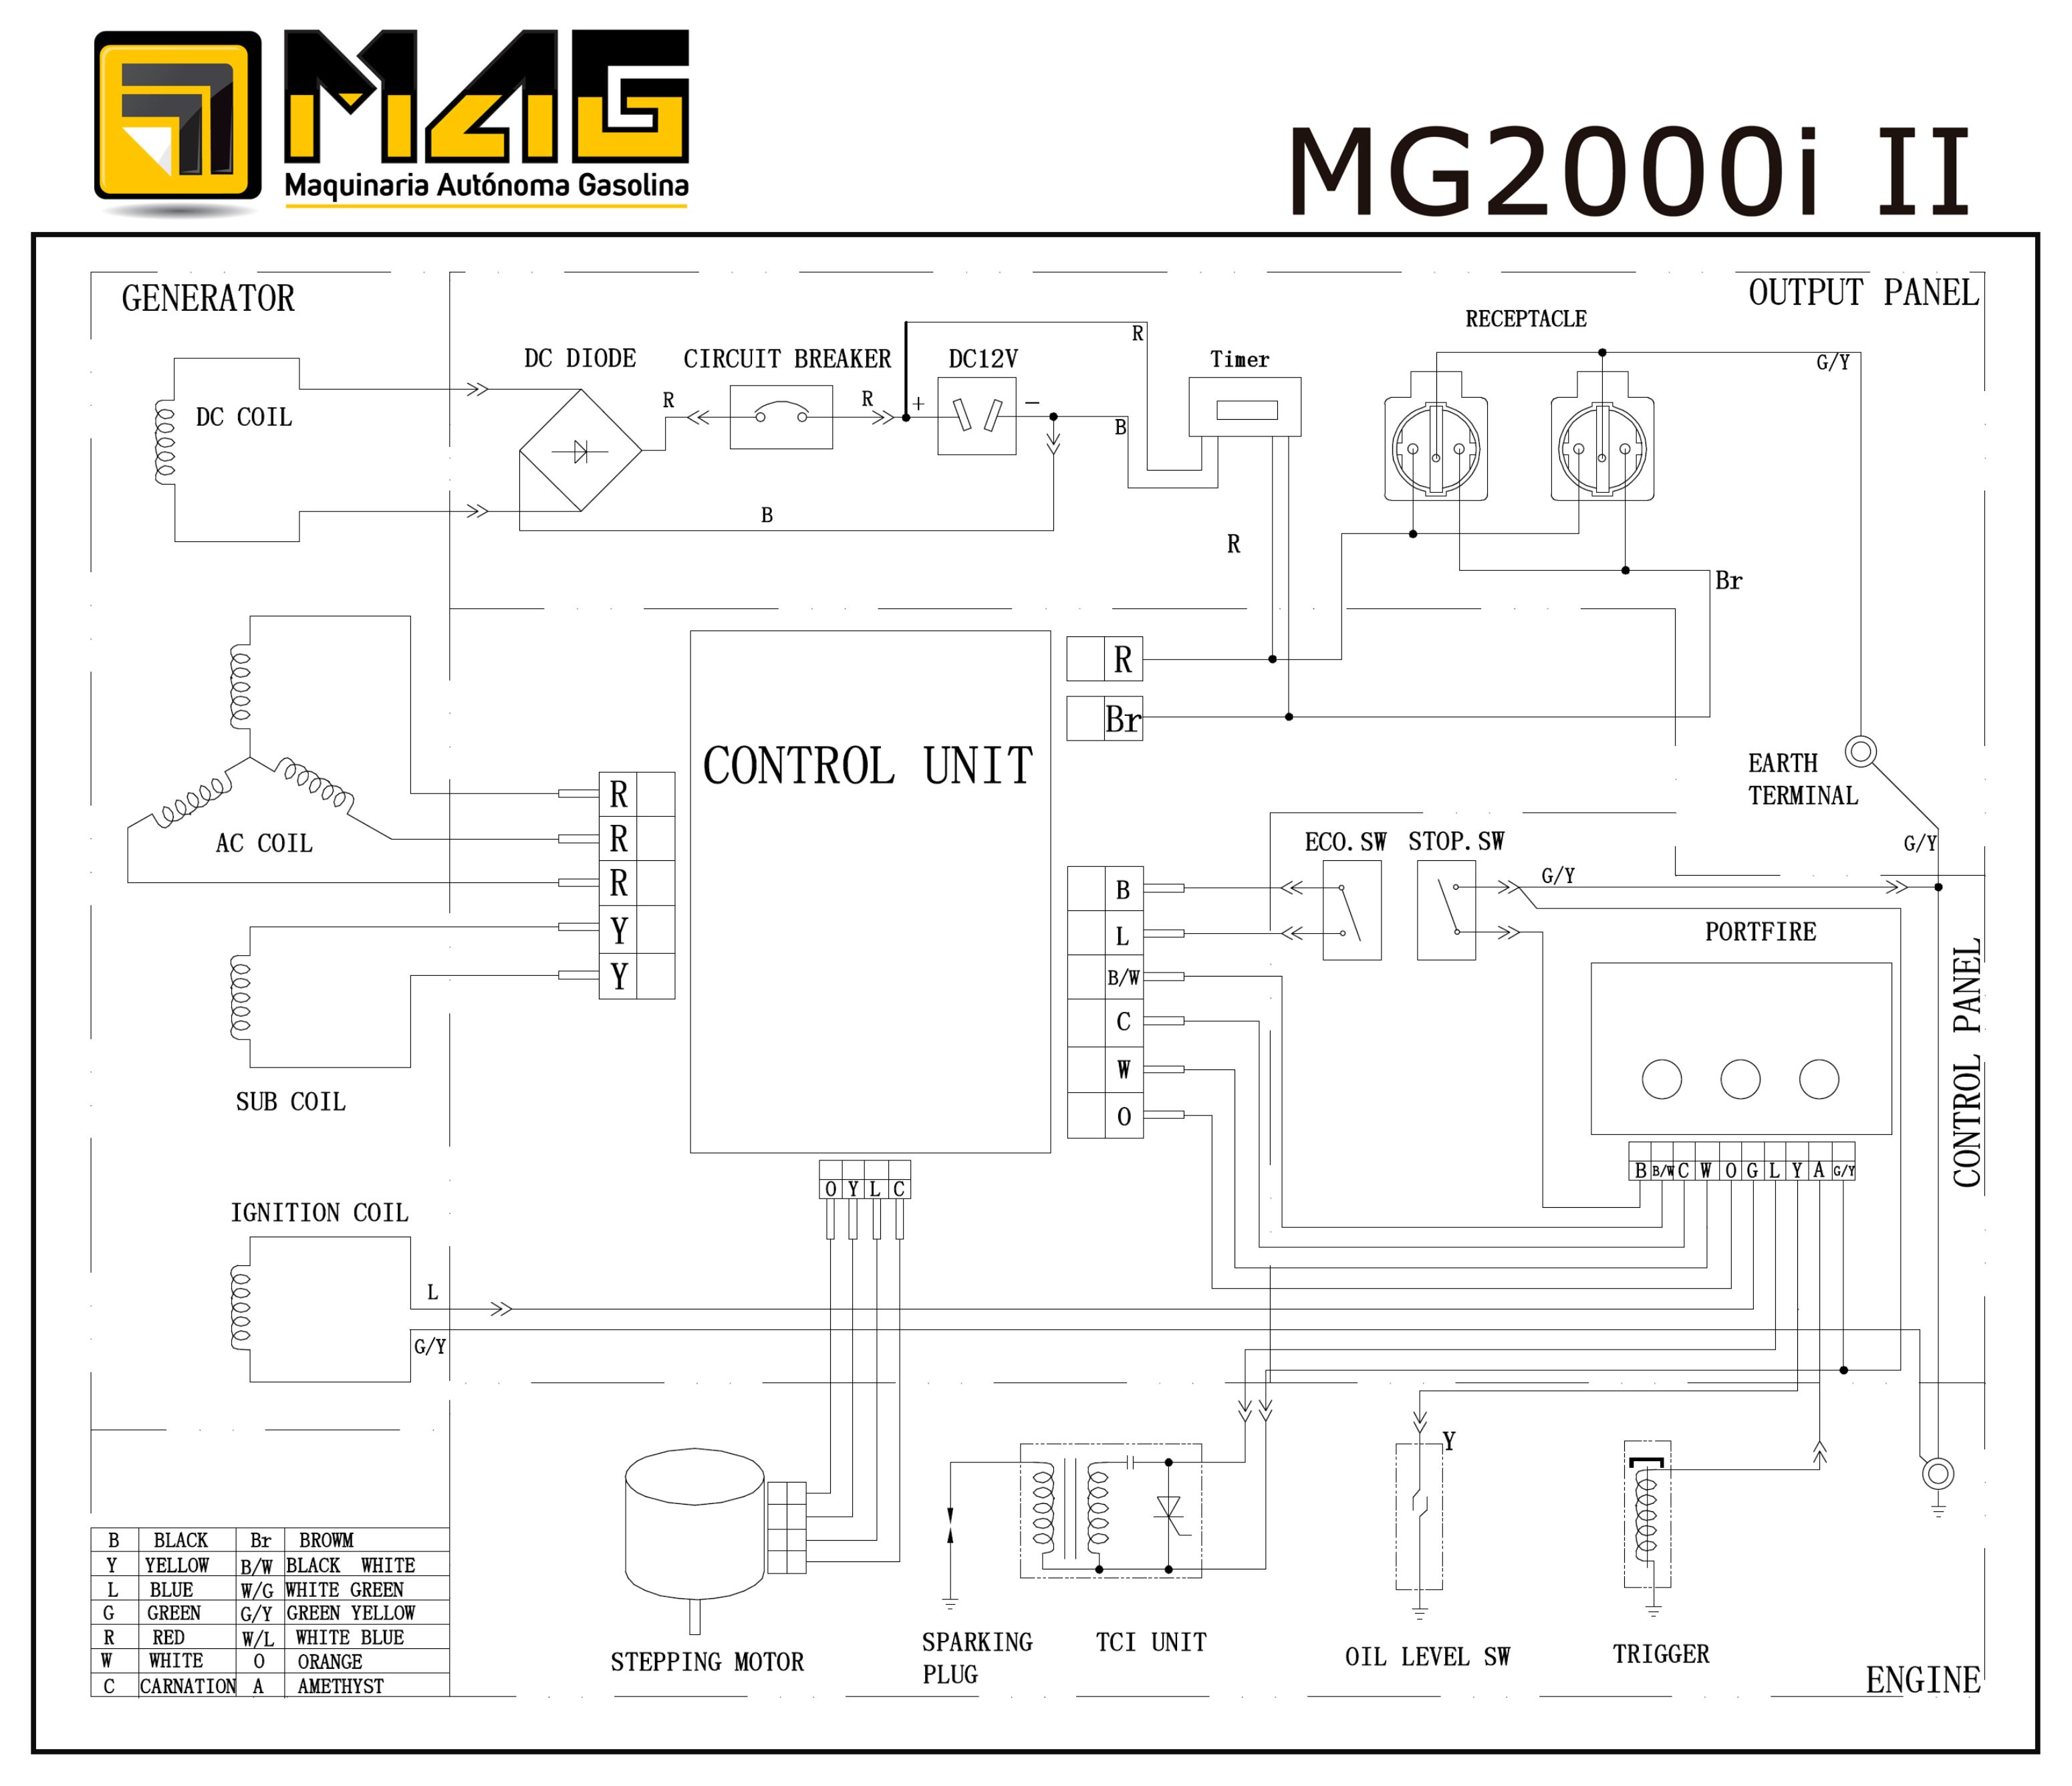 MG2000i Diagram